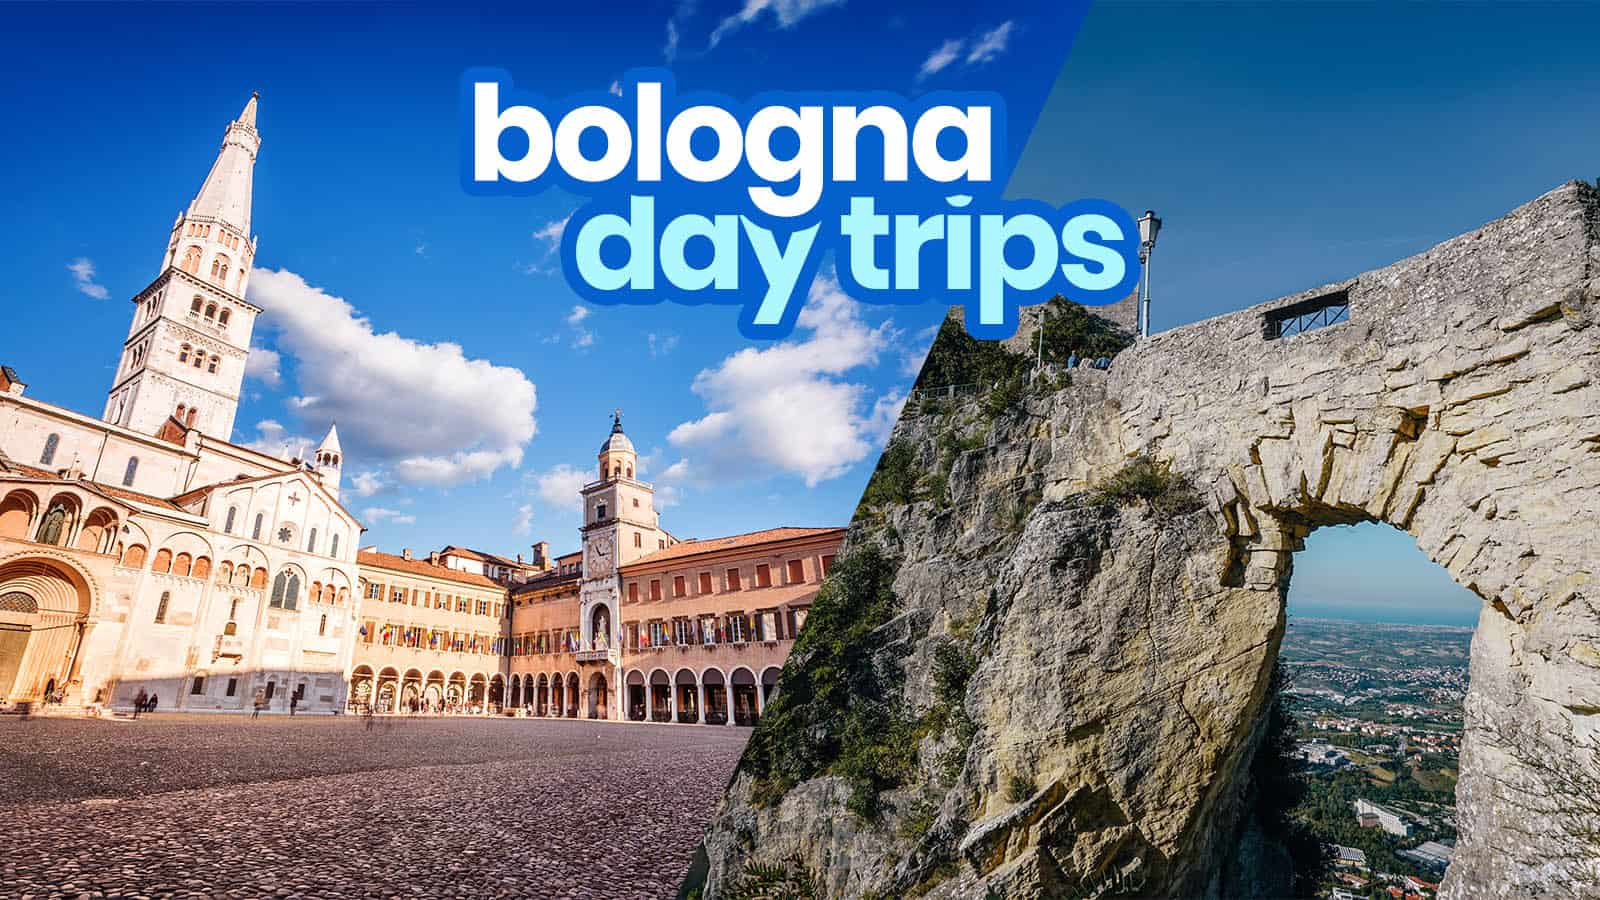 15 DAY TRIP DESTINATIONS from BOLOGNA, ITALY